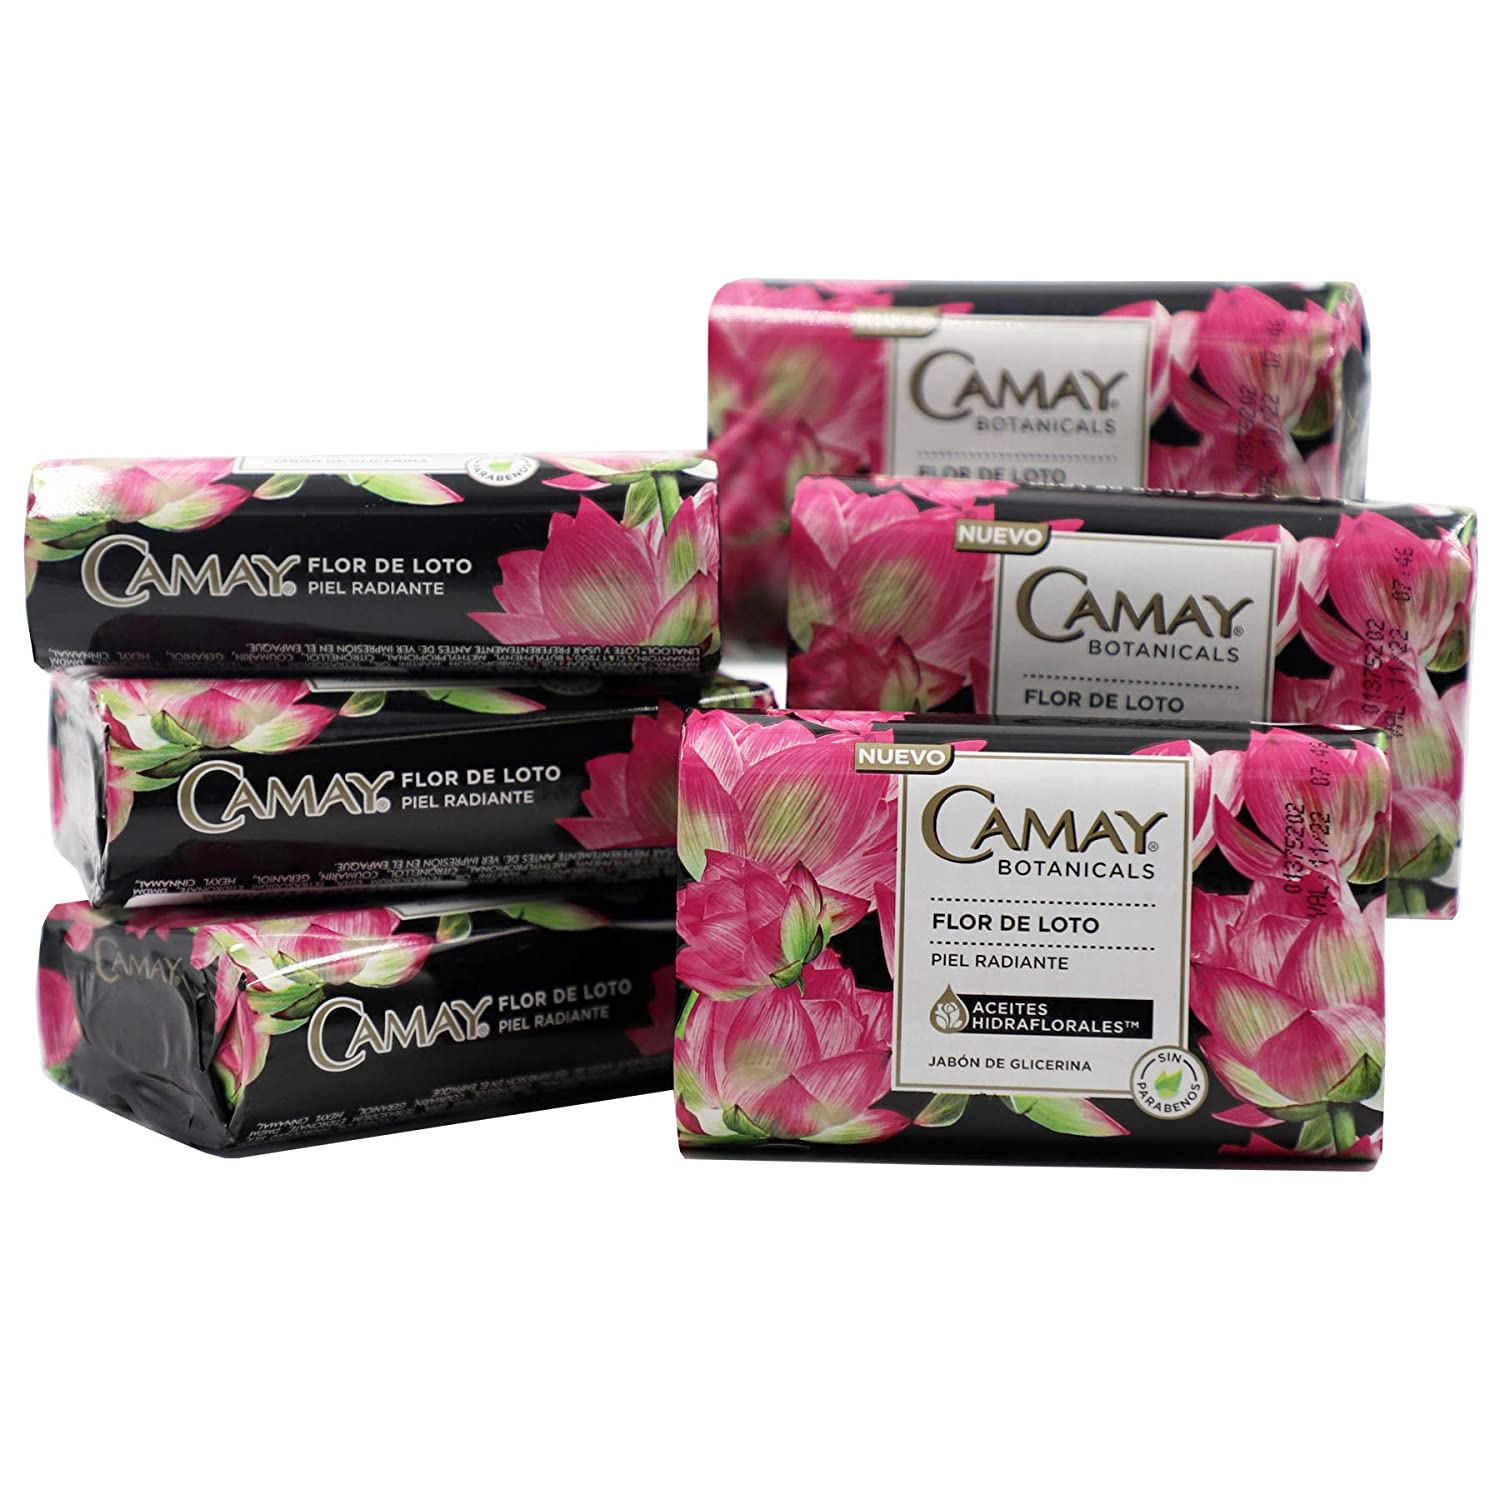 Camay Lotus Flower Bar Soap, Cleans your skin, Helps Moisturize your Skin, Floral Scented, Radiant Skin, 6-Pack of 98 Oz, 6 Bar Soaps